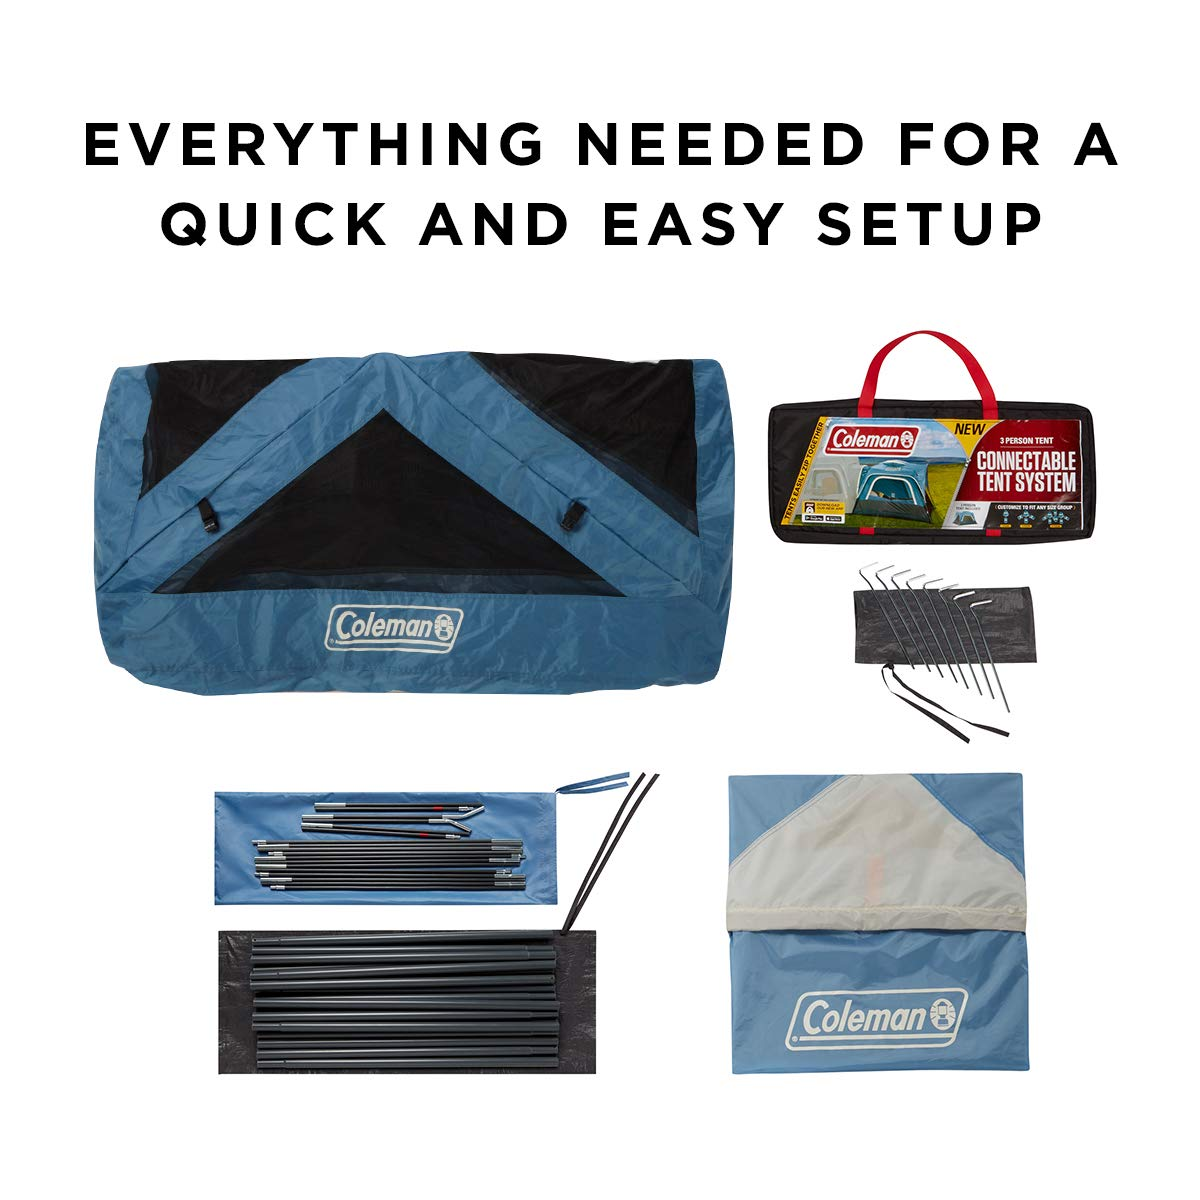 Blue Coleman 3-Person Connectable Tent Connecting Tent System with Fast Pitch Setup